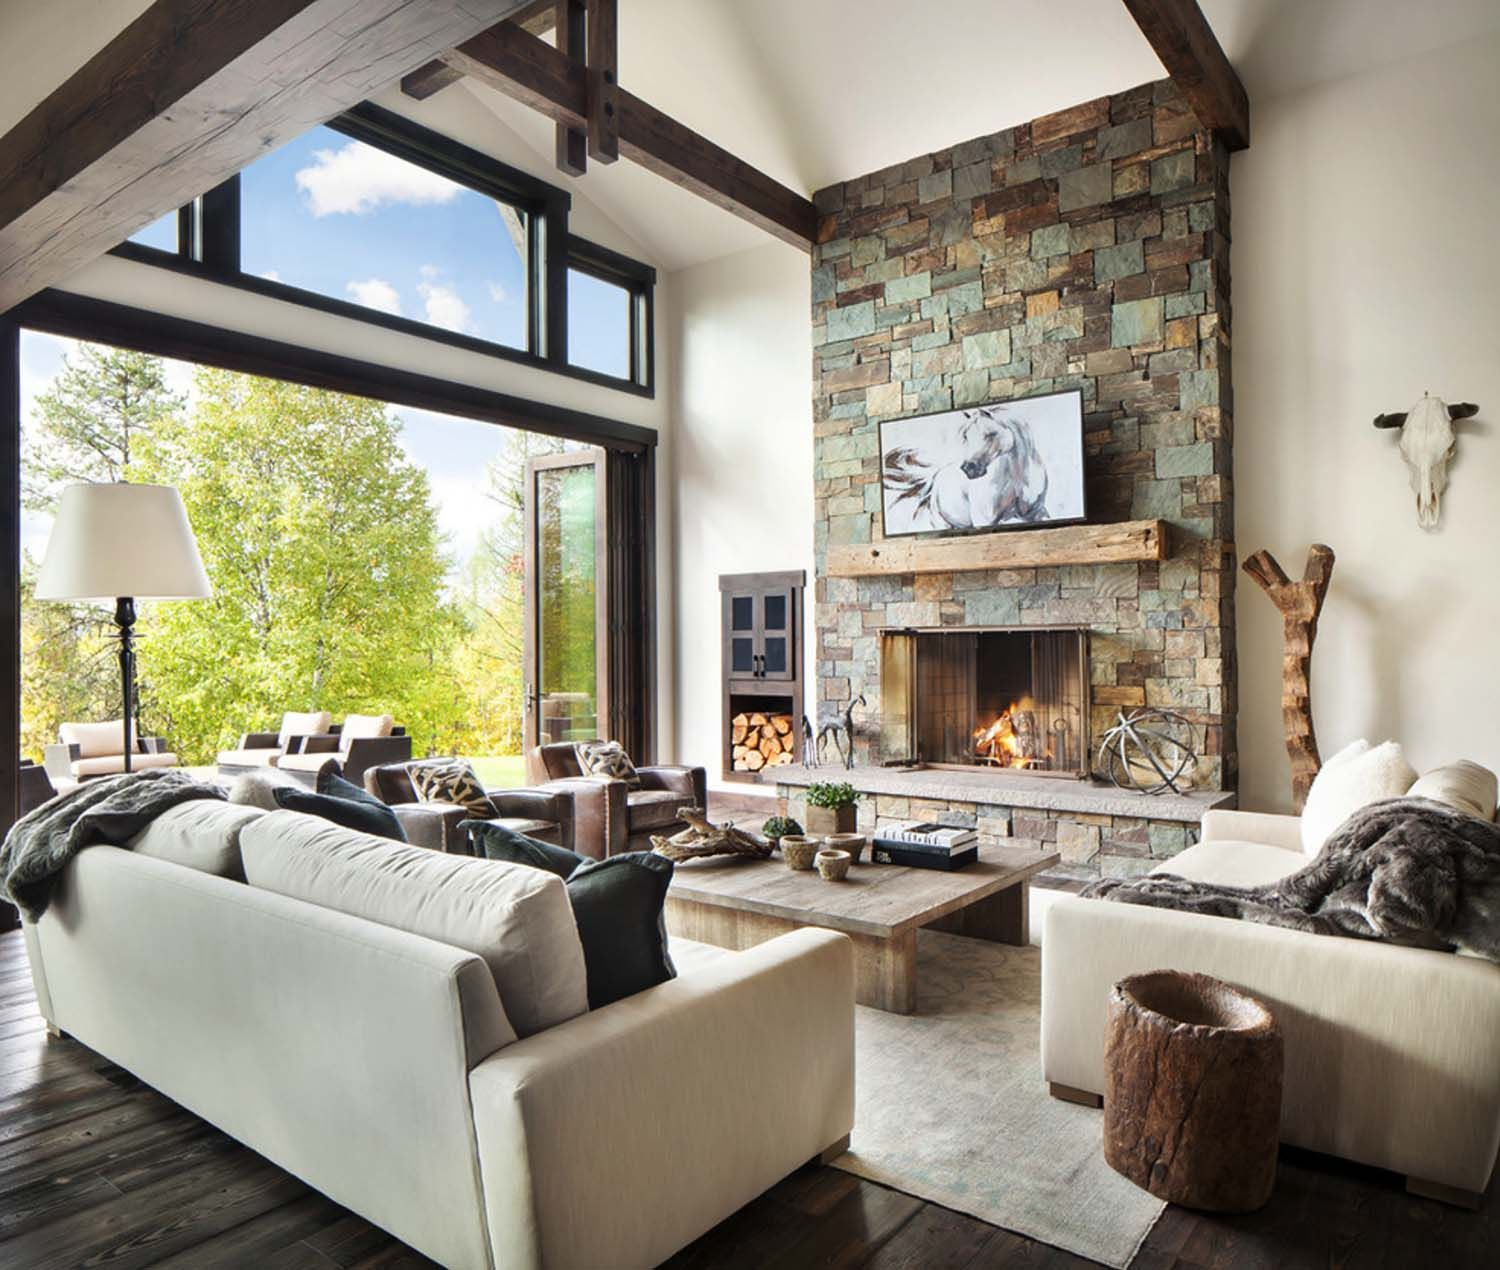 Contemporary House Interior Designs: Rustic-modern Dwelling Nestled In The Northern Rocky